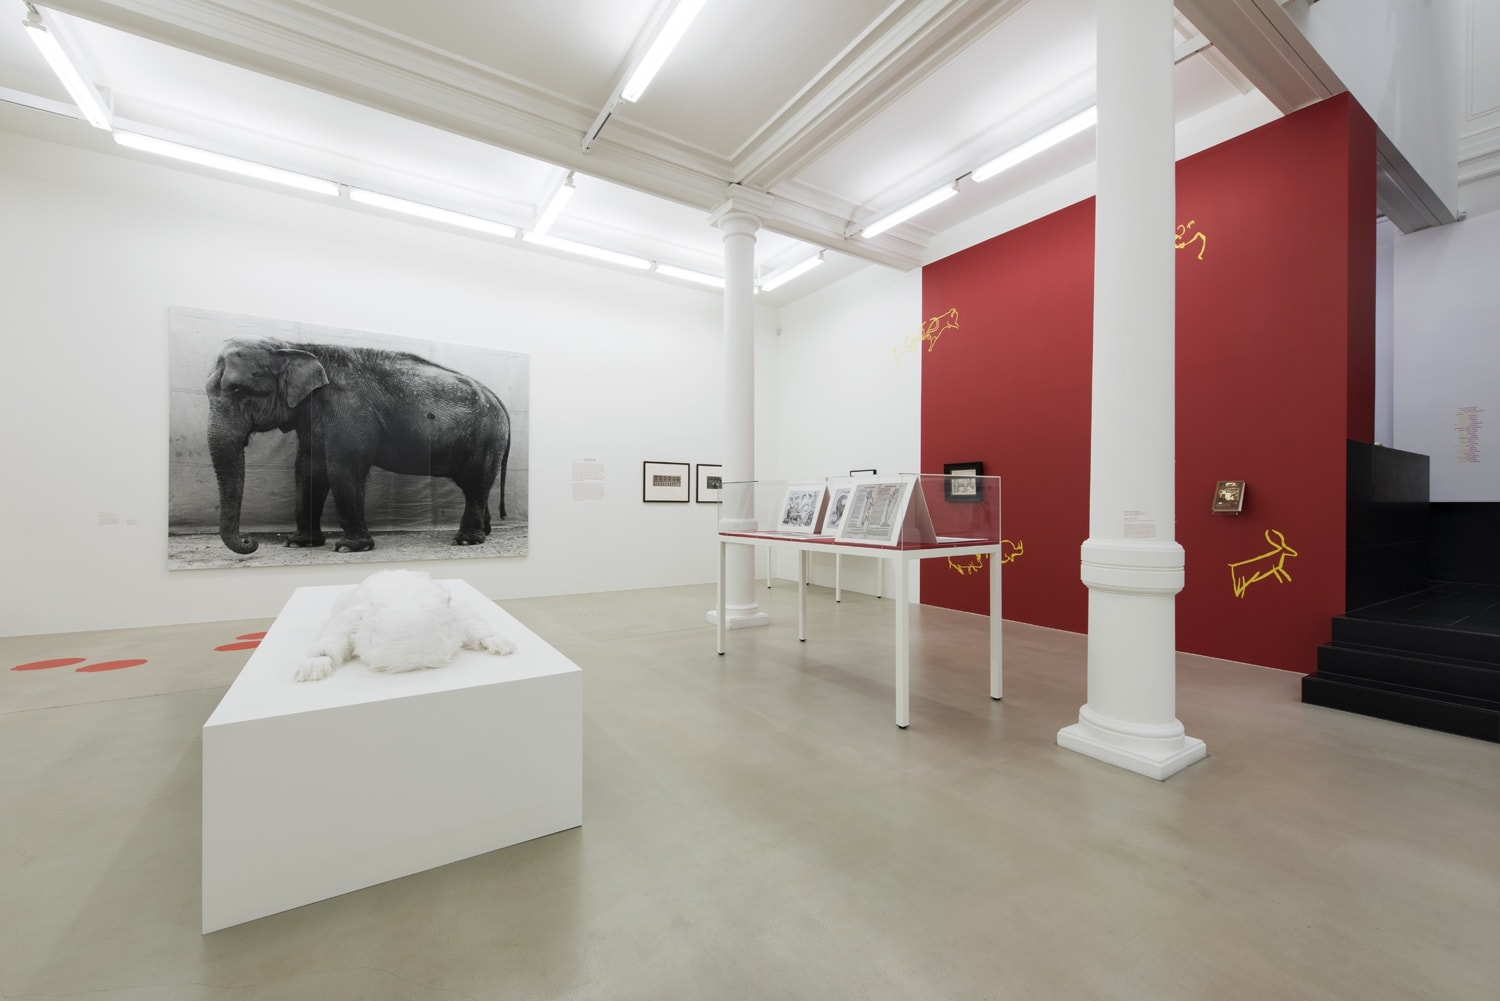 Gallery view, on the left wall is a large image of a elephant while the right wall is red with deer drawings.